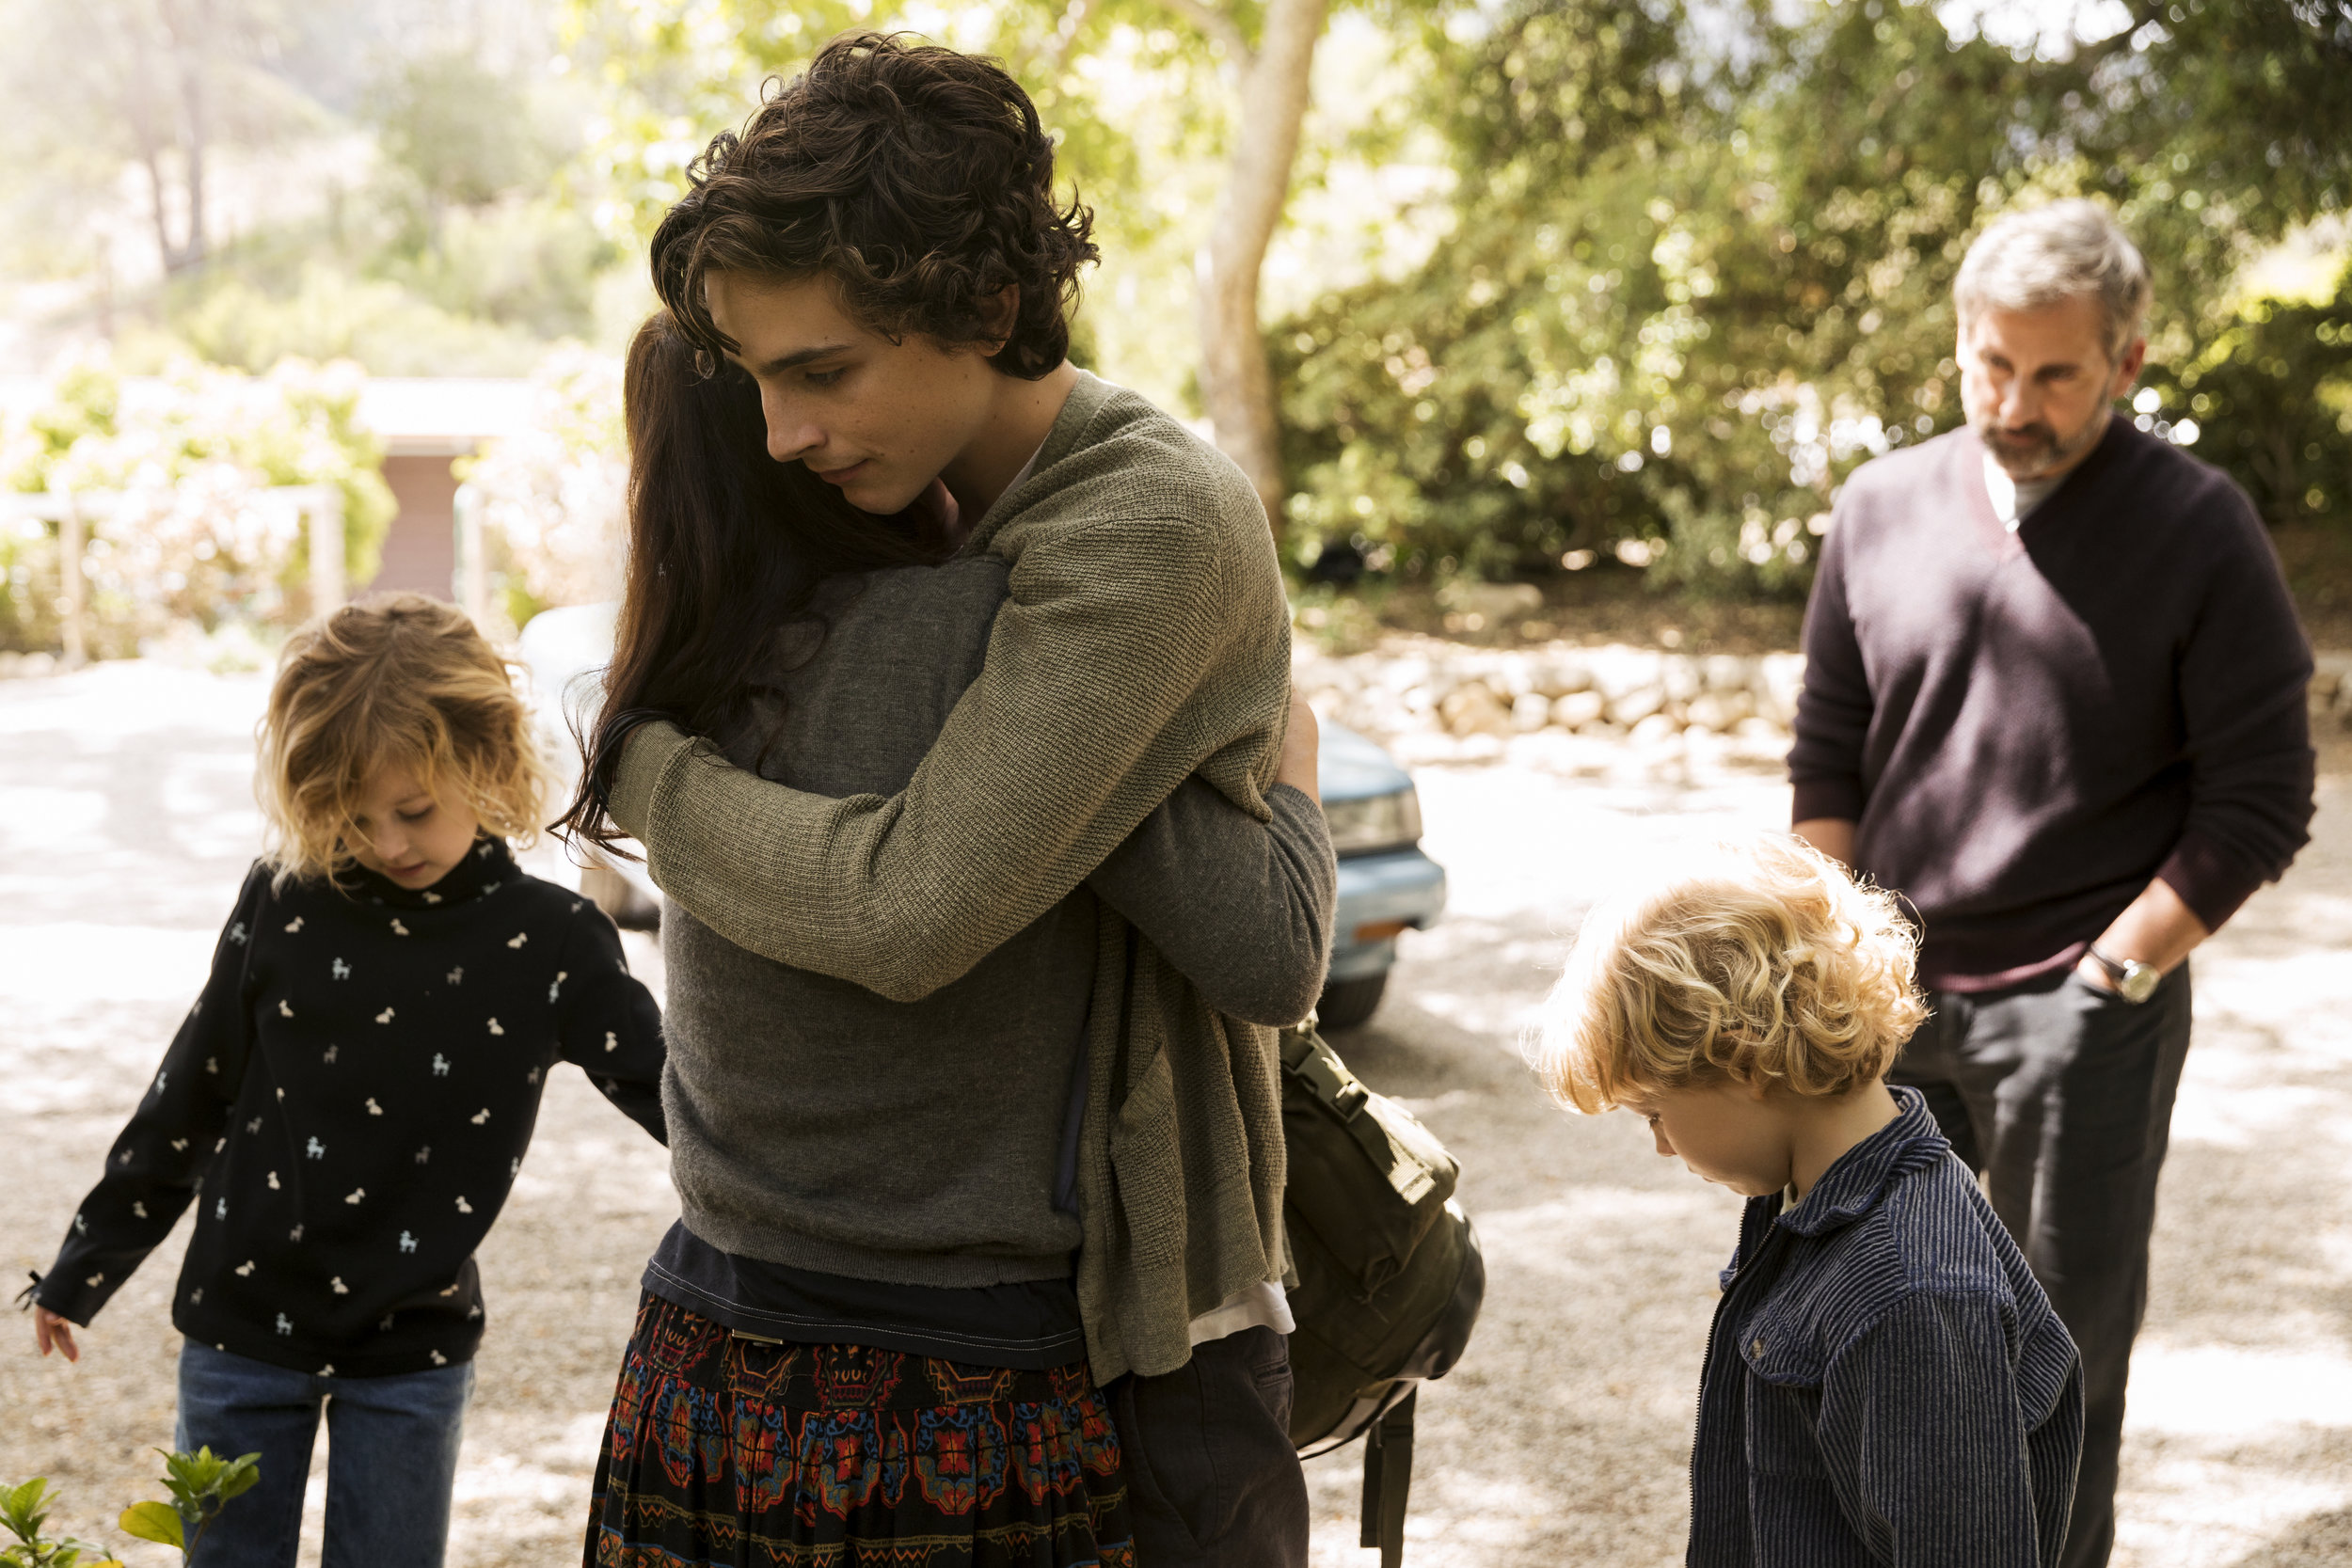 Timothee Chalet's bravura, layered performance is the magnetic core of Beautiful Boy